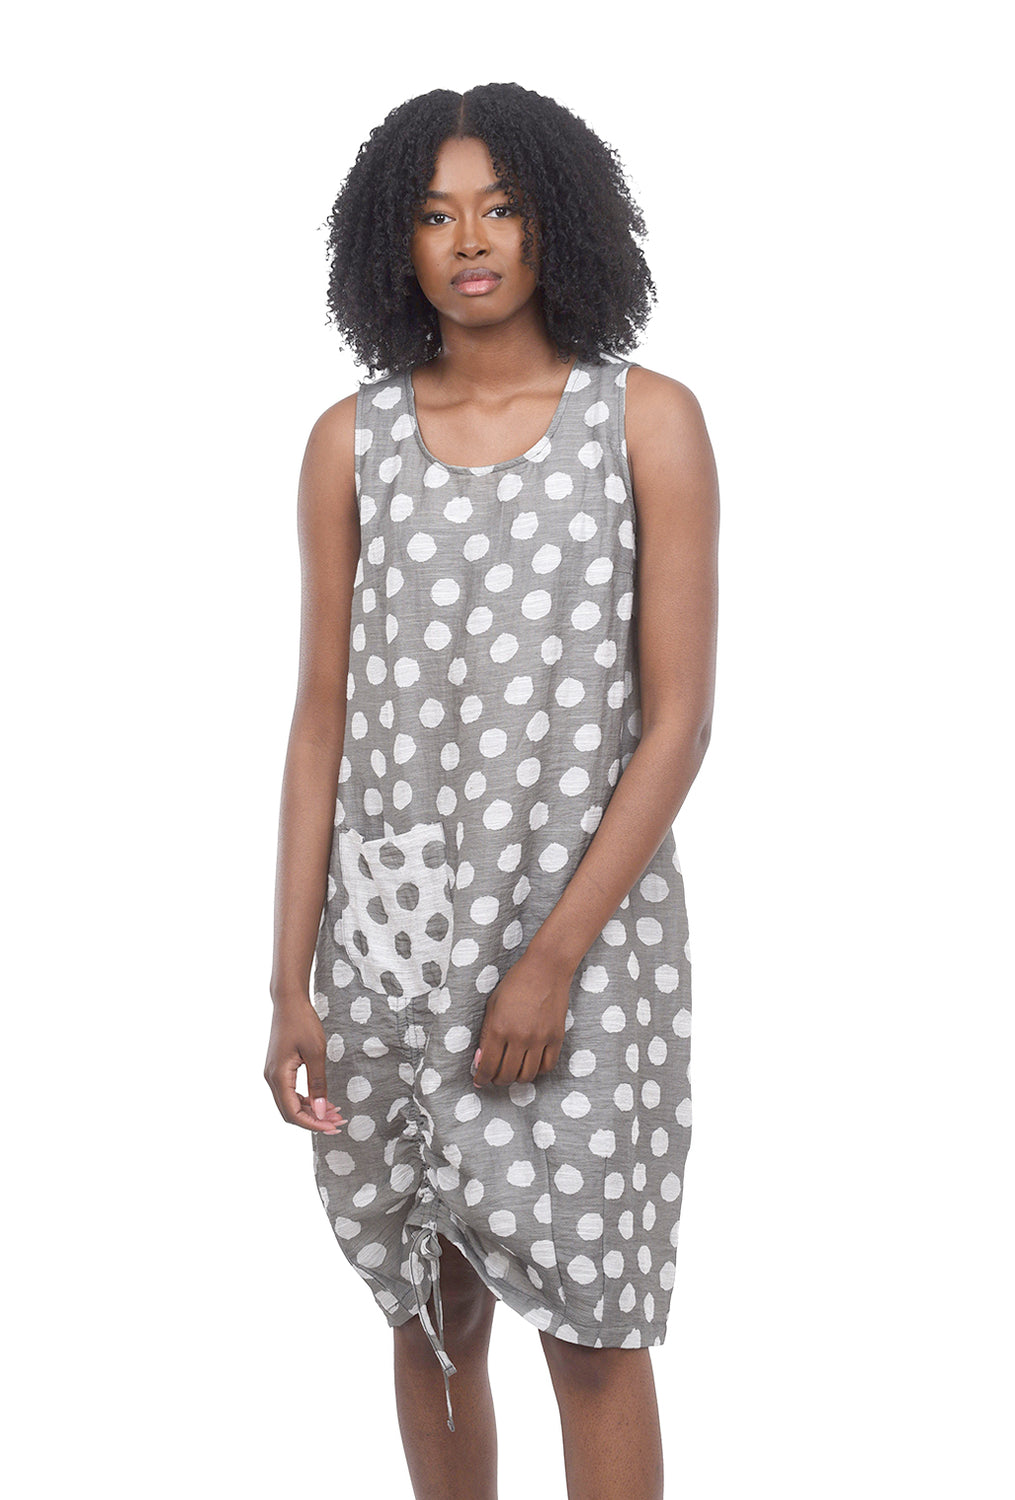 Liv by Habitat Jacquard Dot Heidi Dress, Driftwood Gray